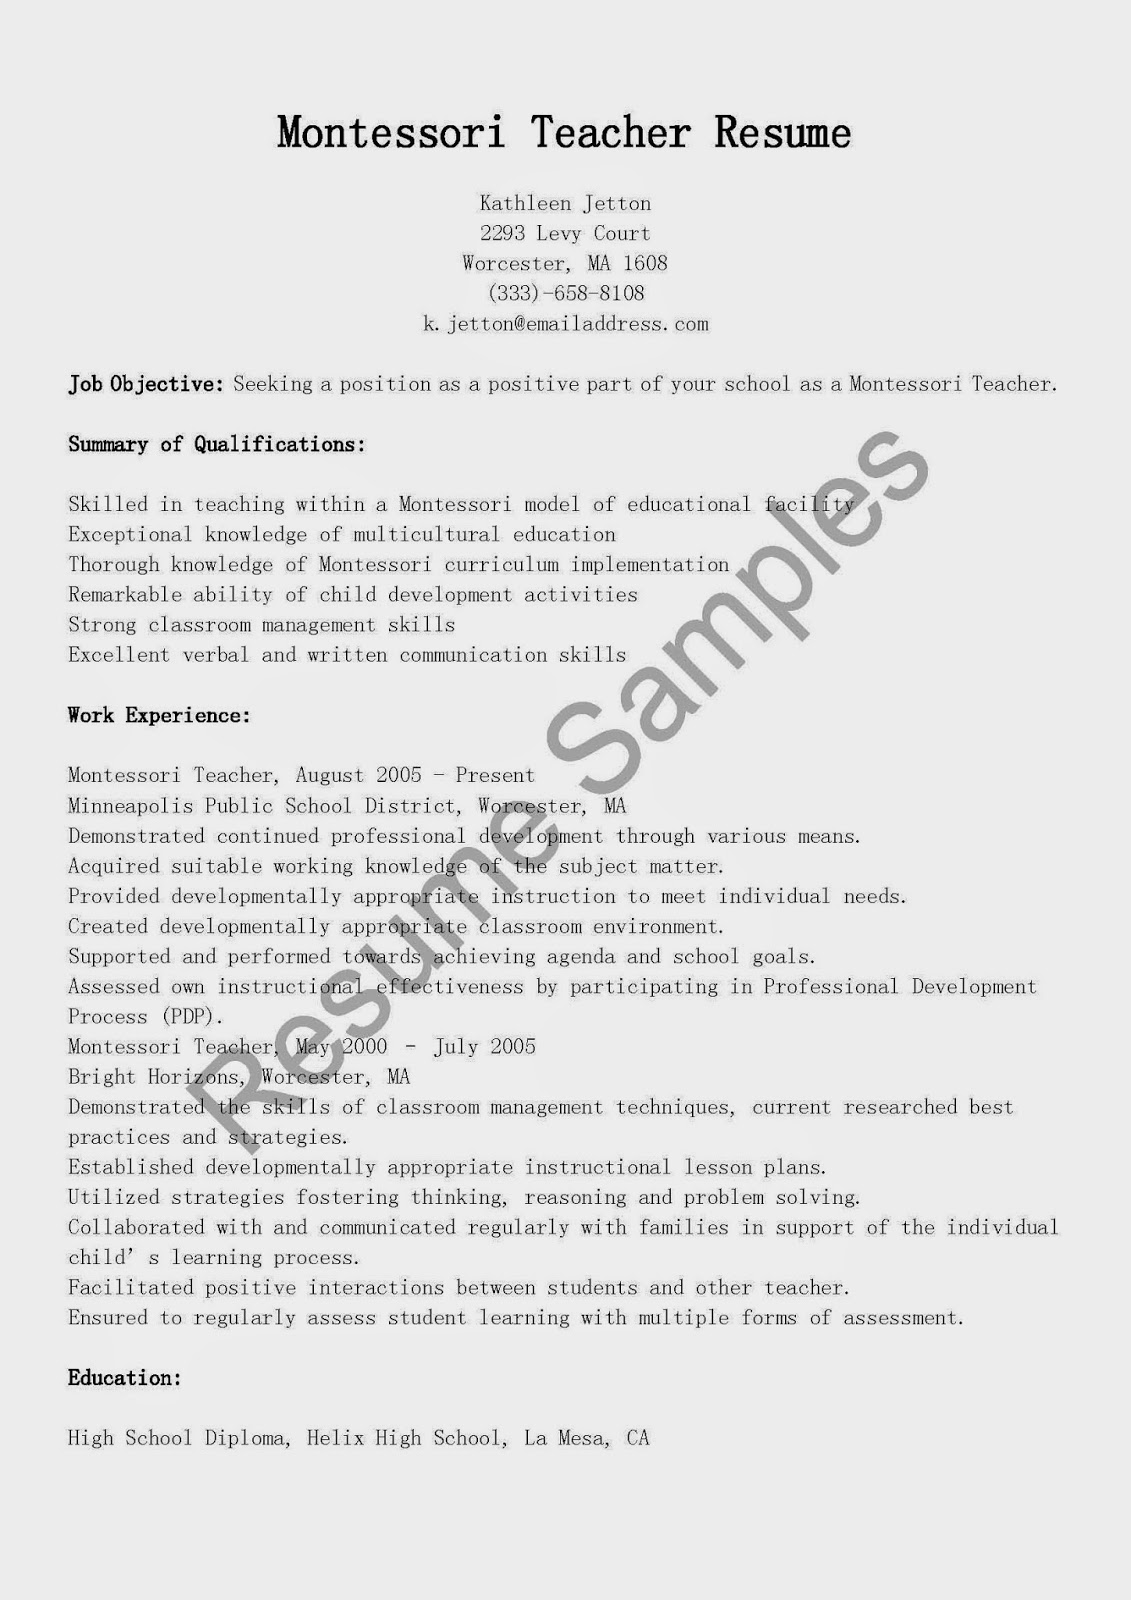 Resume Examples Teacher Fresh Food Pantry Volunteer Sample Resume Resume Daily